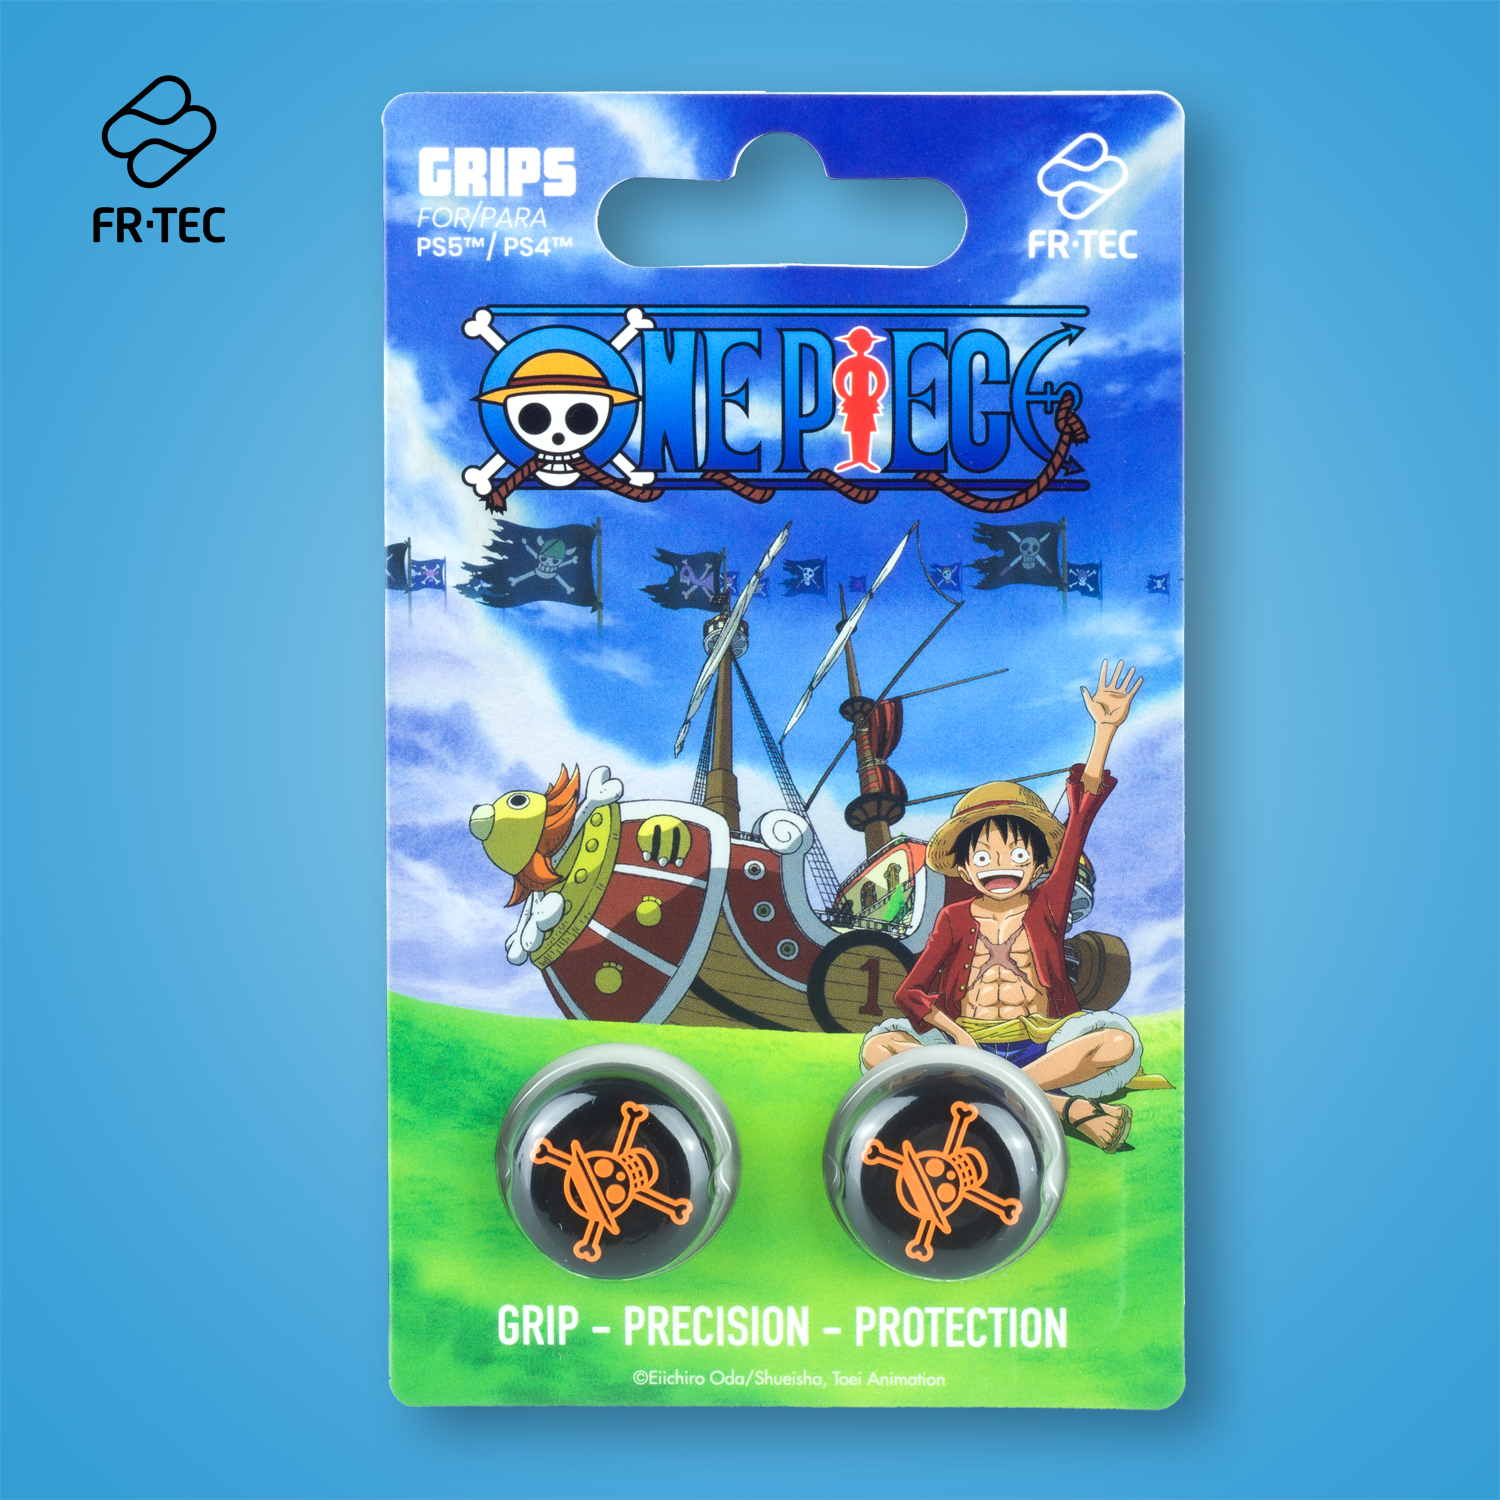 OPPS4GRISUN - PS4 One Piece Grips Sunny - Web - 3